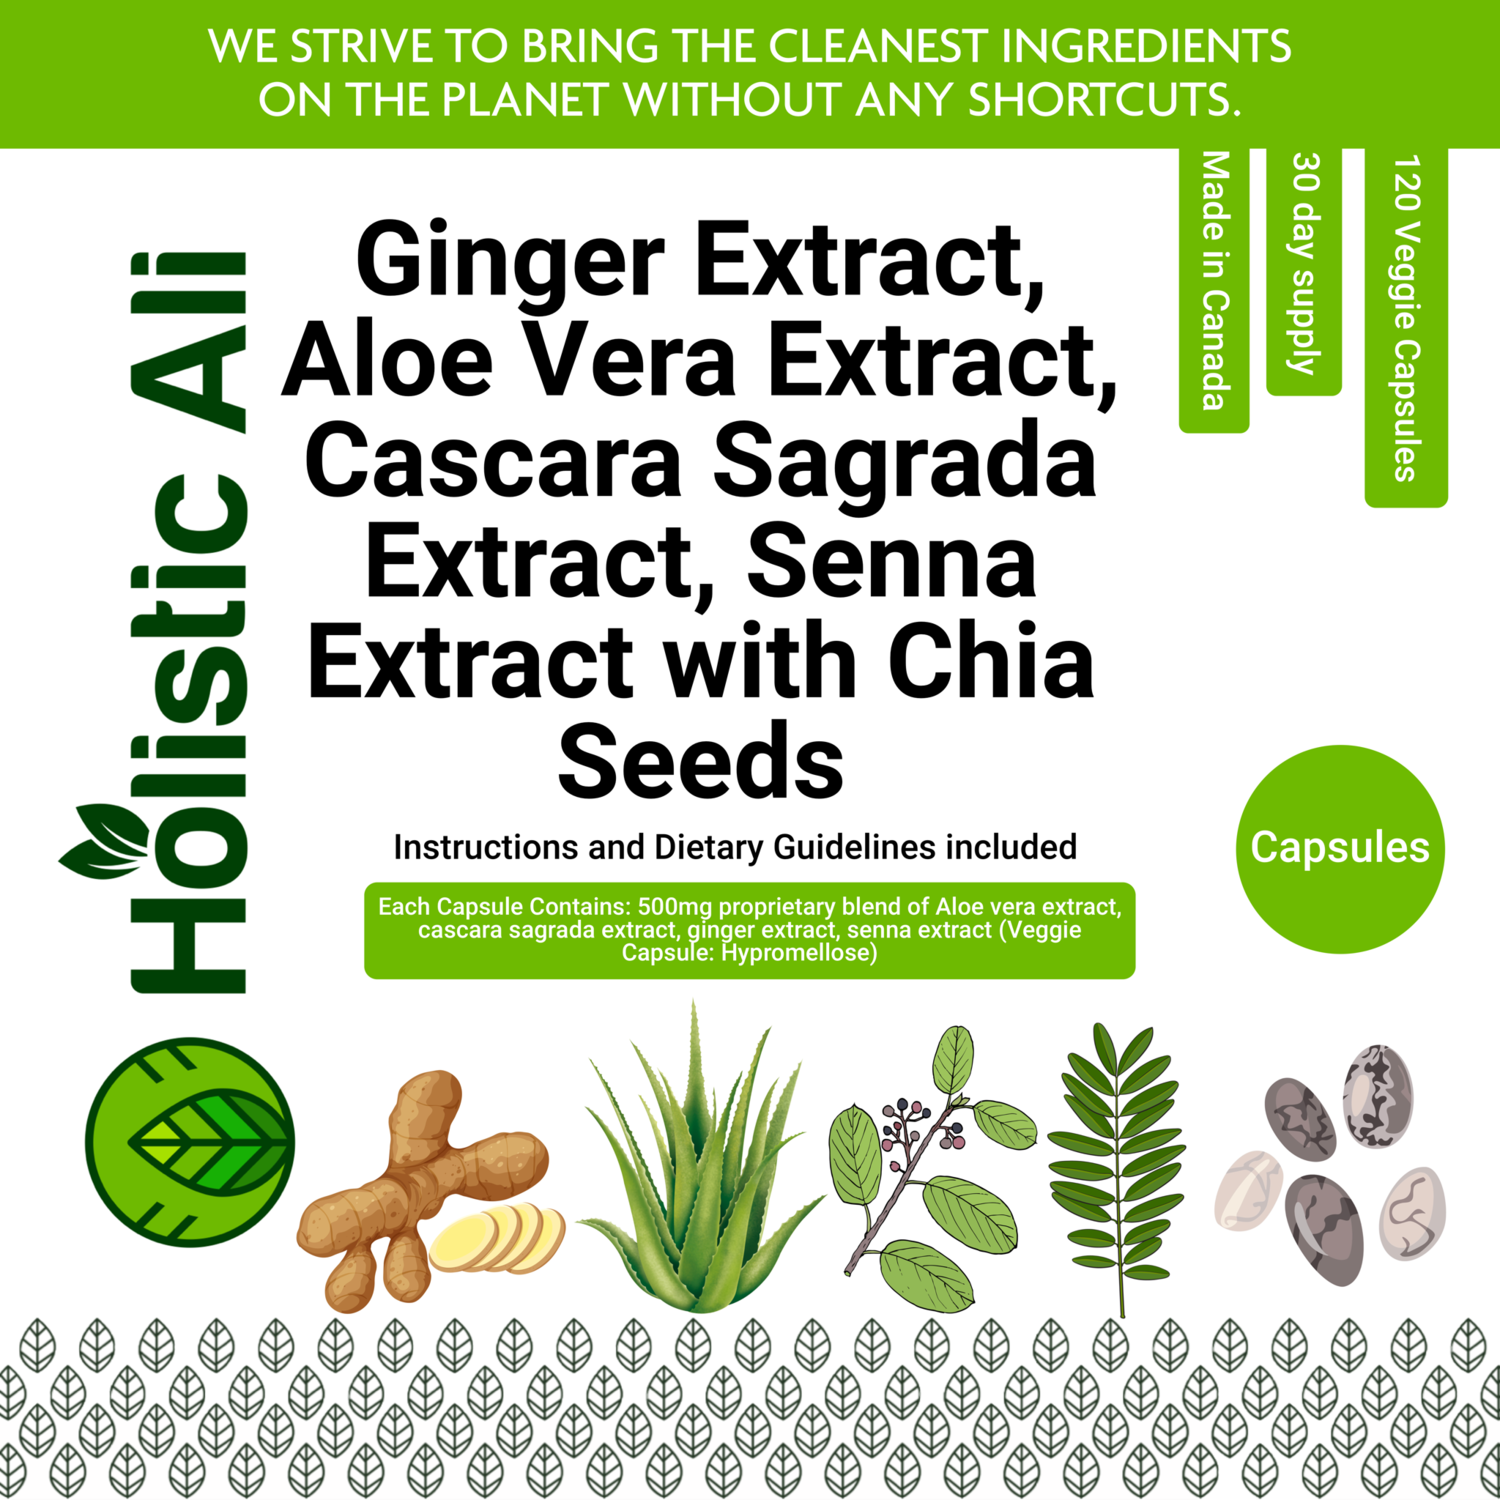 Ginger Extract, Aloe Vera Extract, Cascara Sagrada Extract, Senna Extract 120 Capsules + 226g Organic Fair Trade Chia Seeds FREE